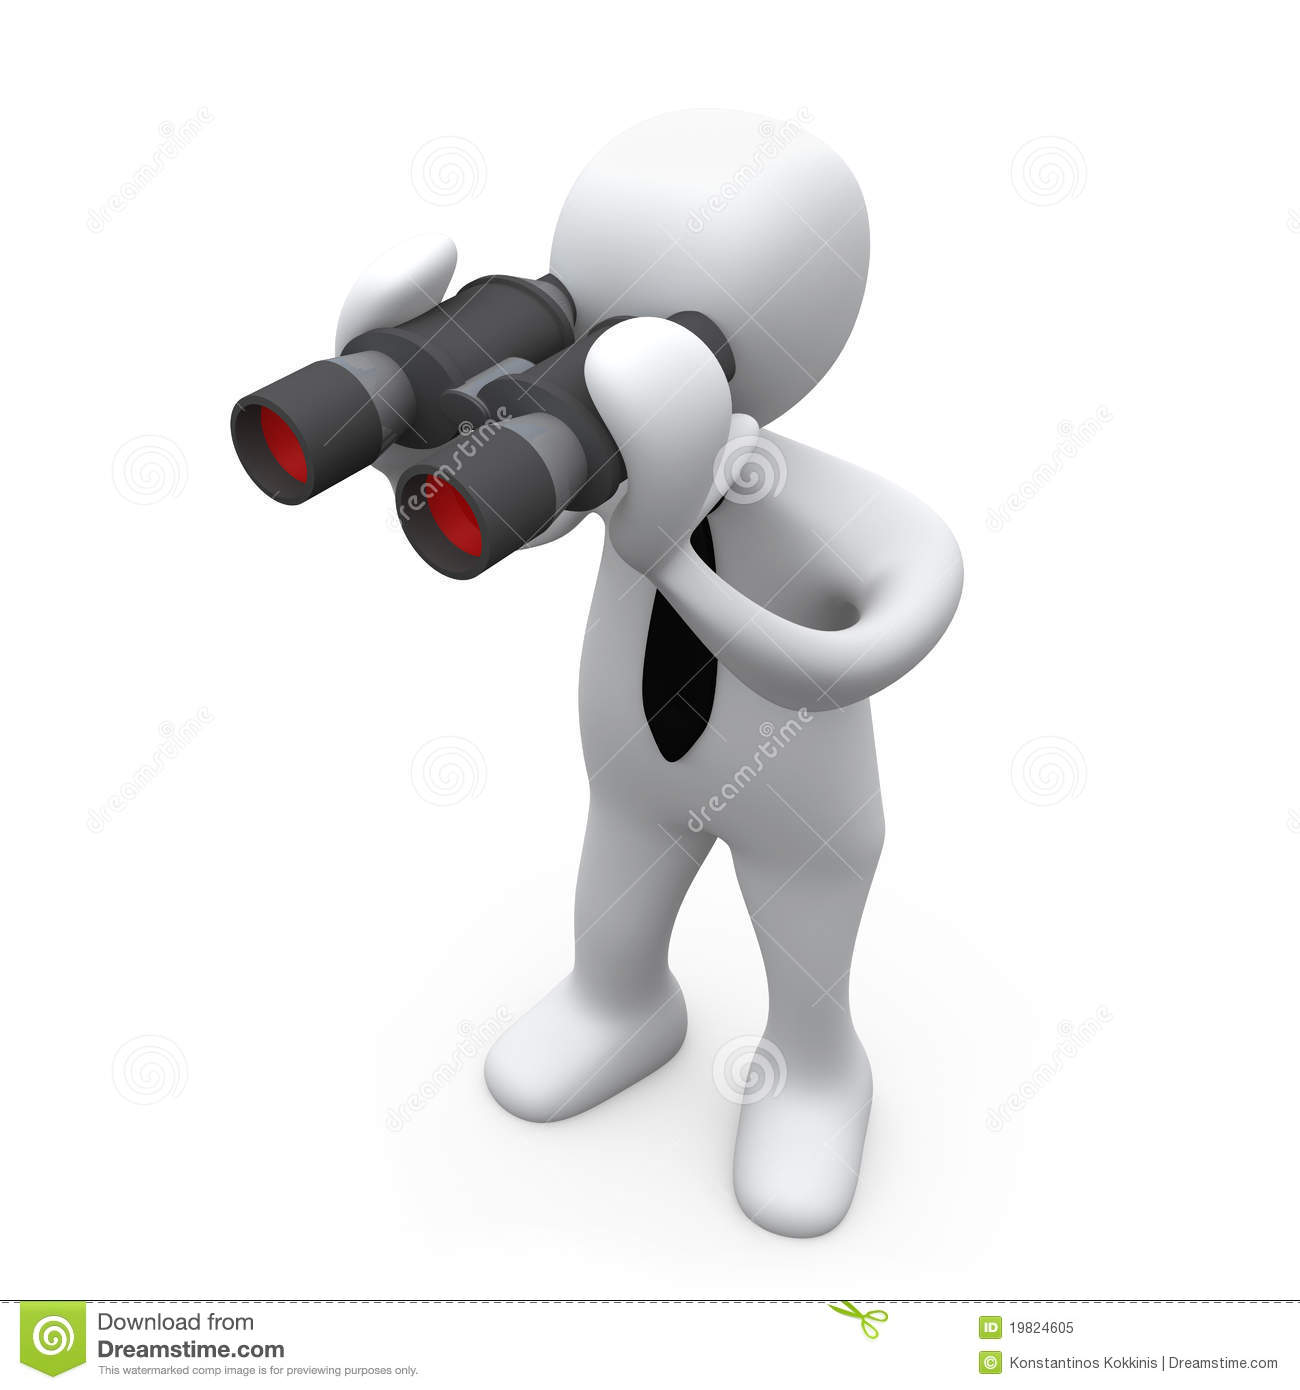 Looking Through Binoculars Royalty Free Stock Photo   Image  19824605